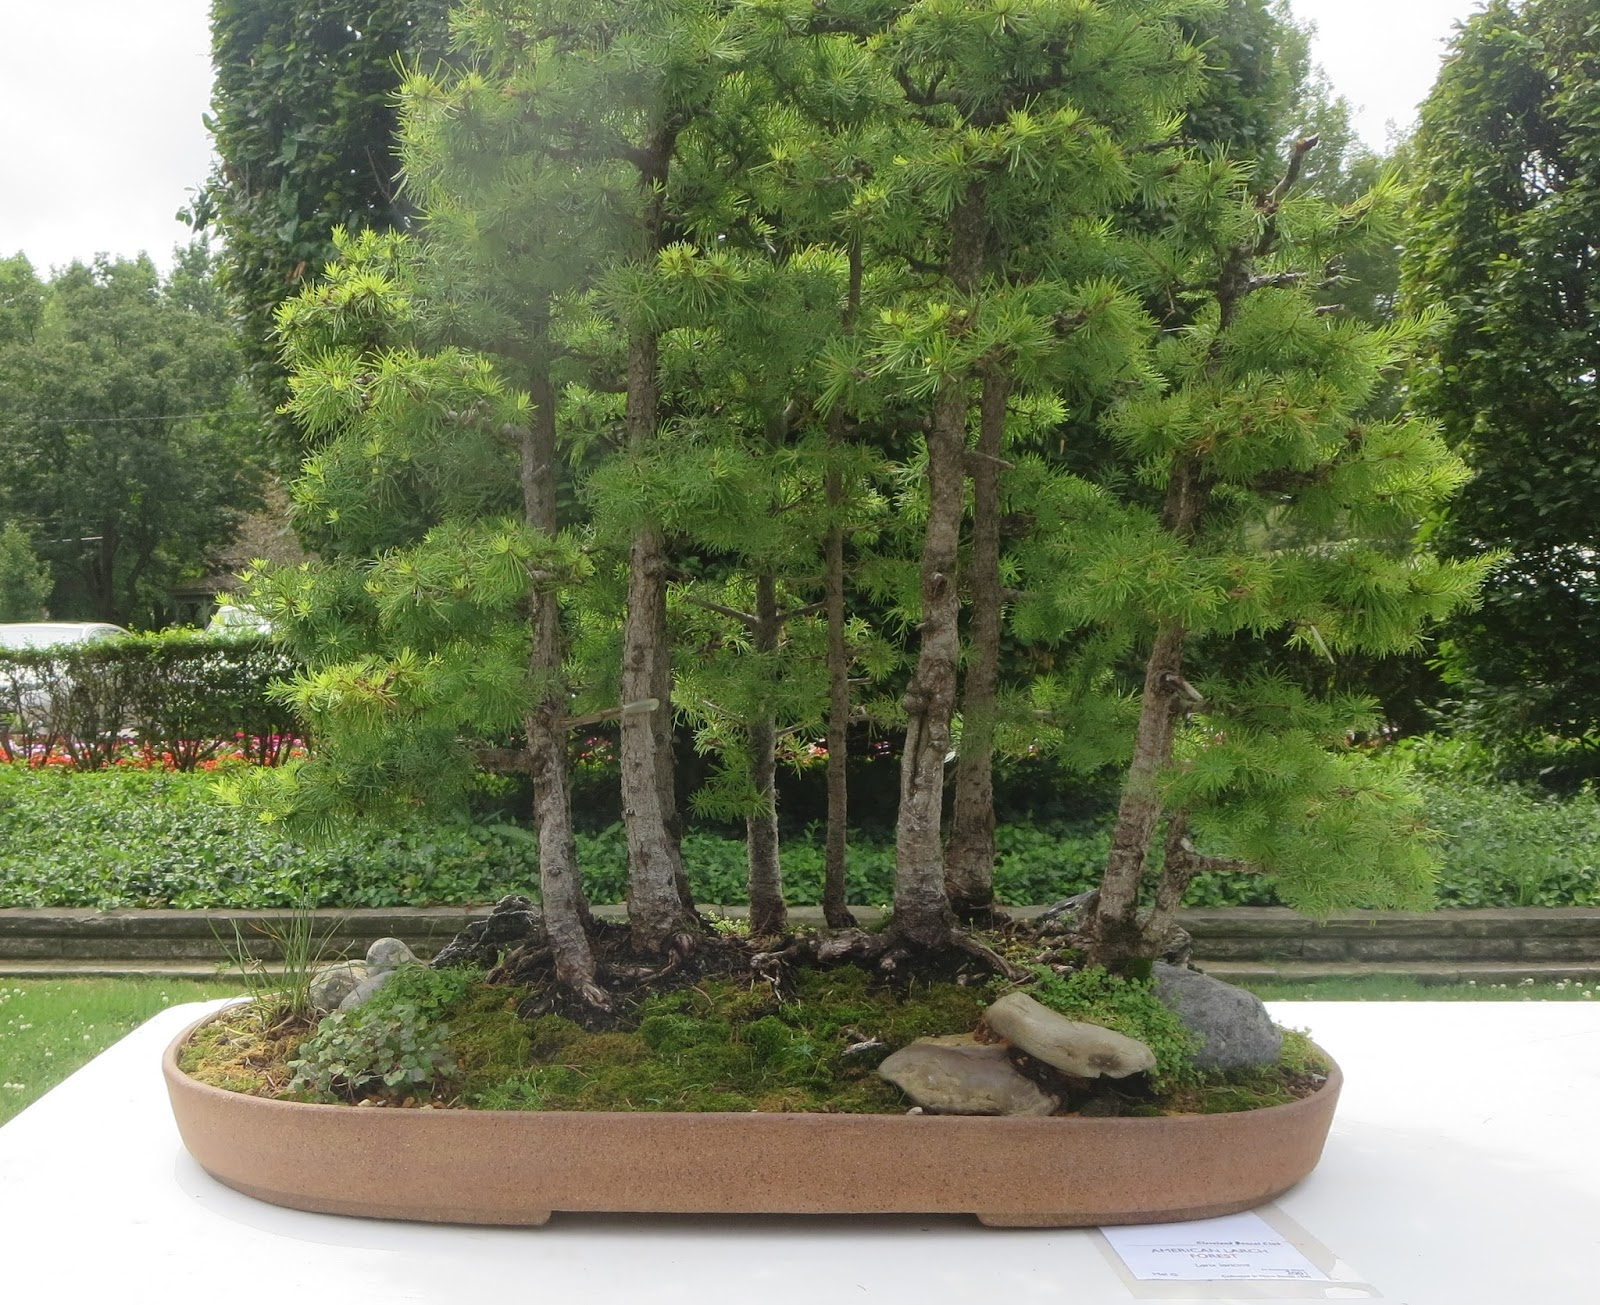 Akron Canton Bonsai Society A Visit To The Cleveland Bonsai Club Outdoor Show